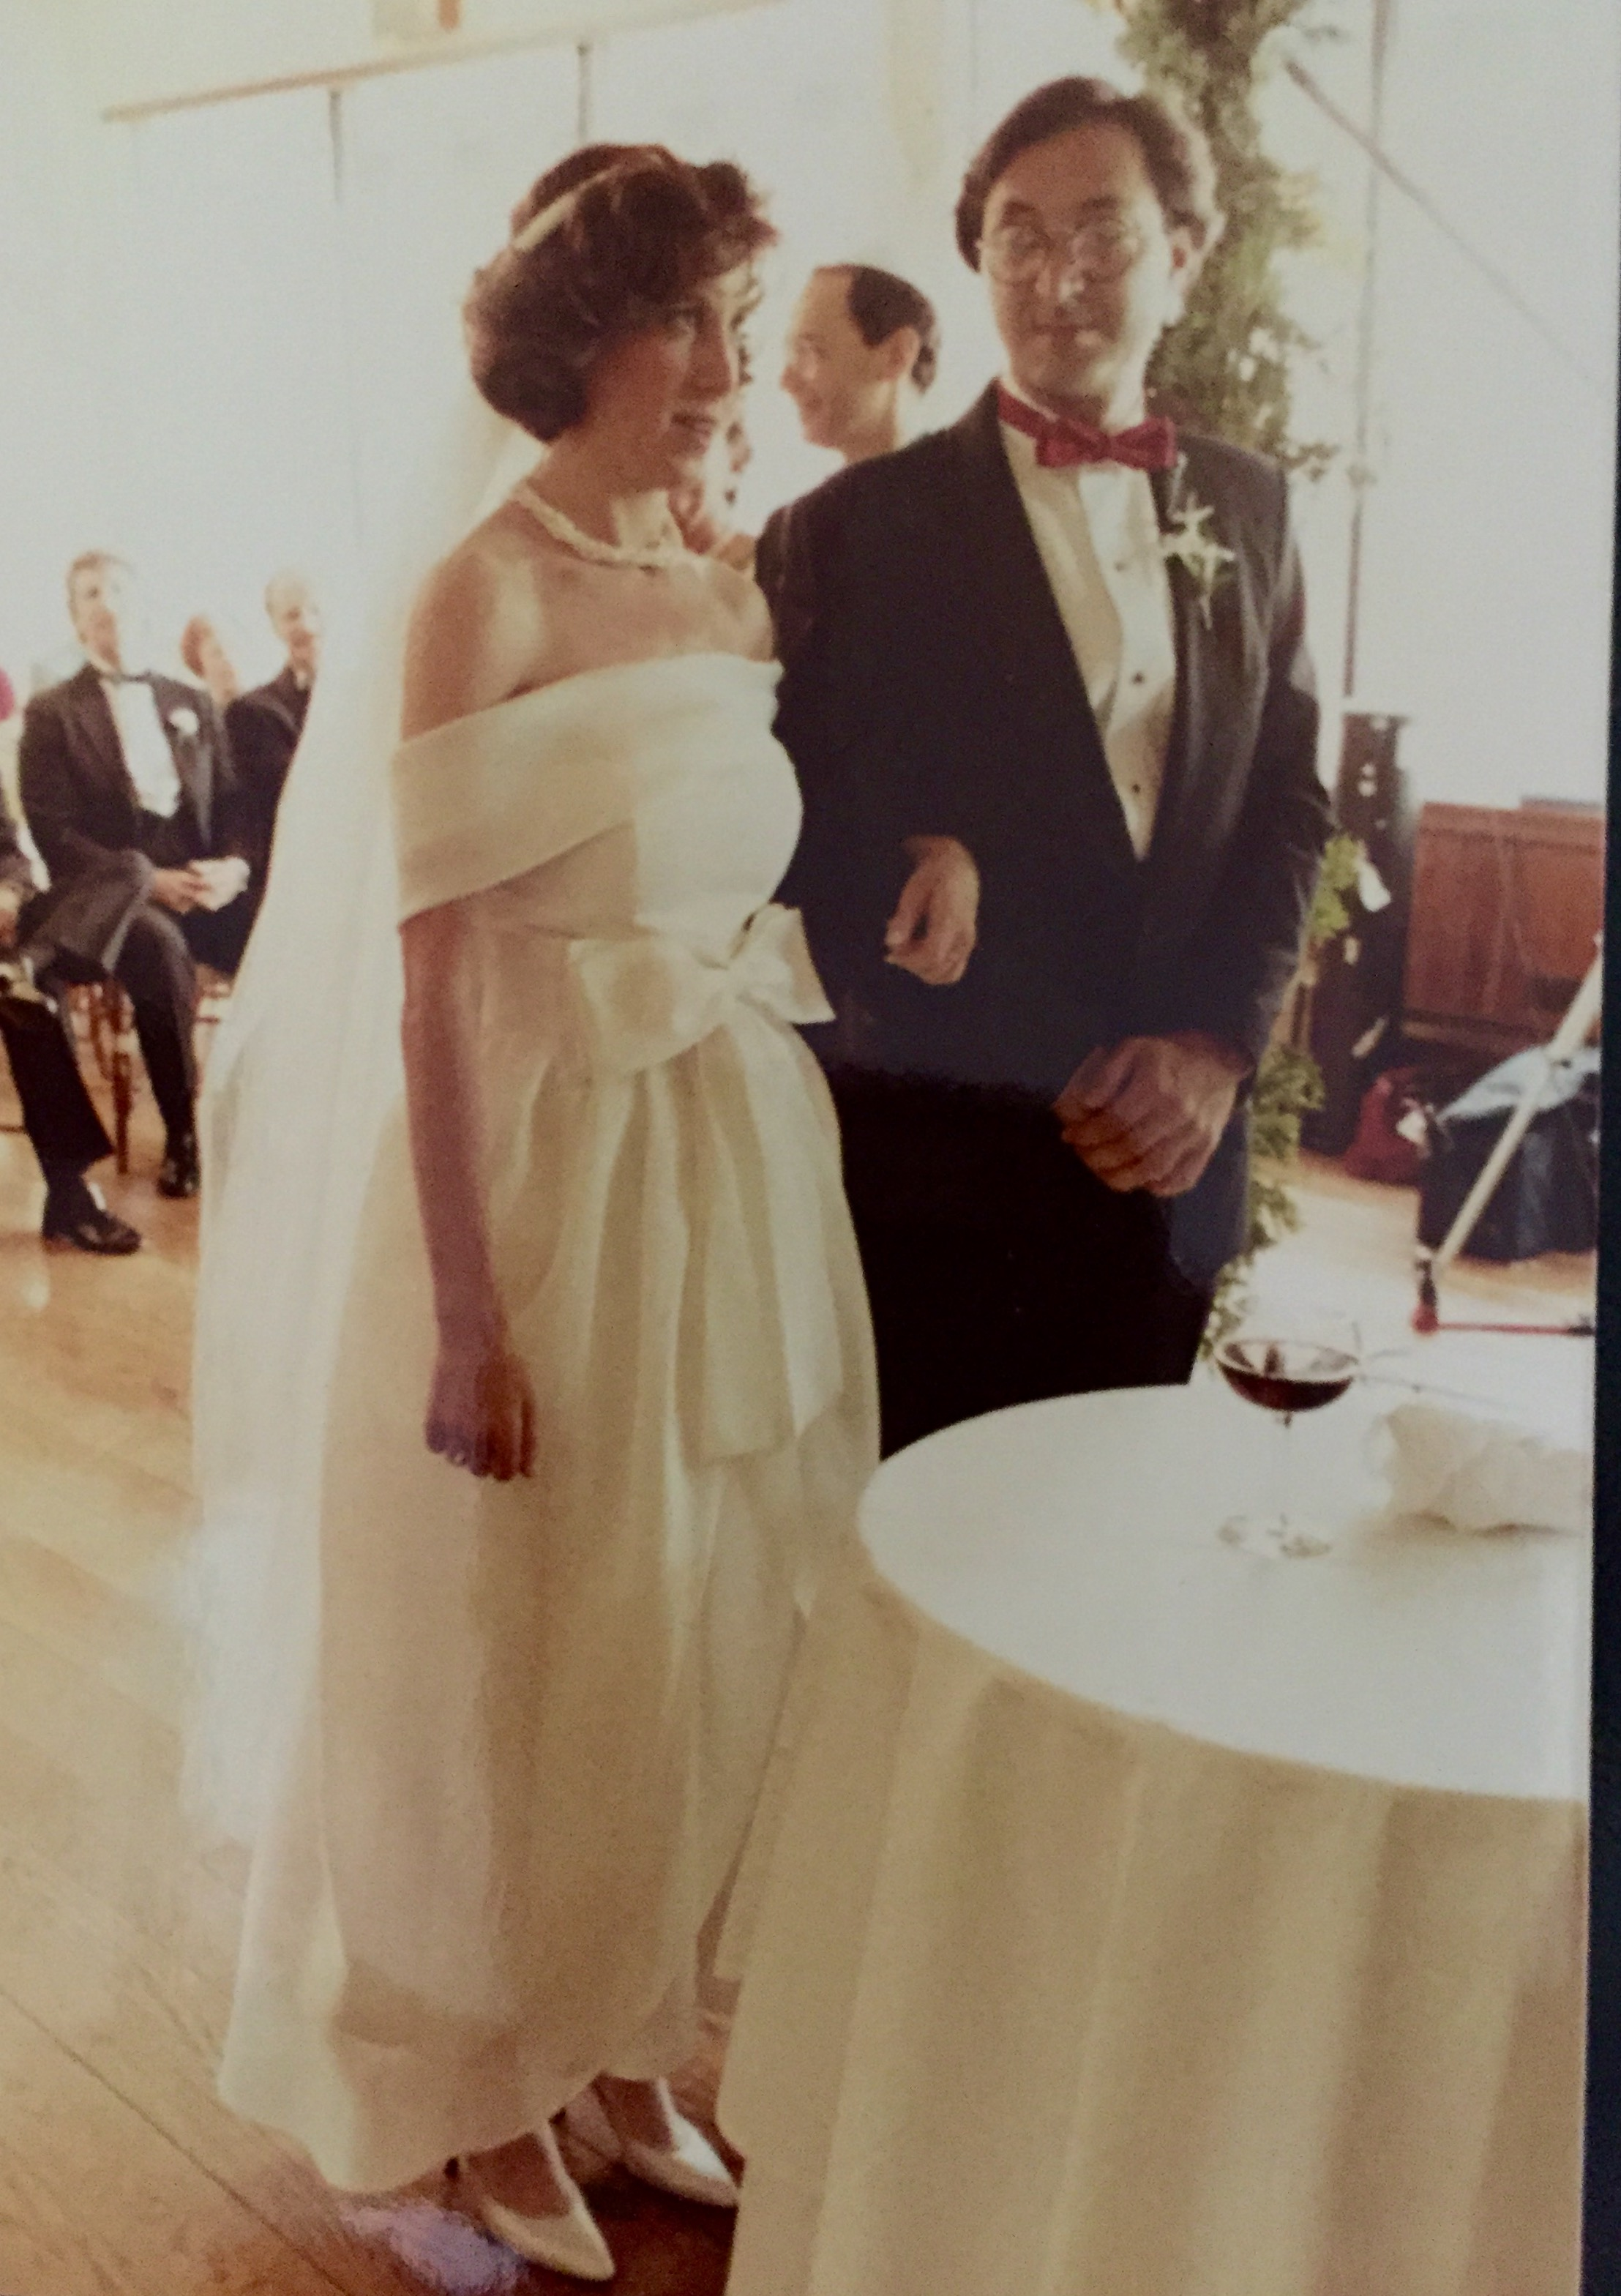 Our wedding ceremony 32 years ago.jpg